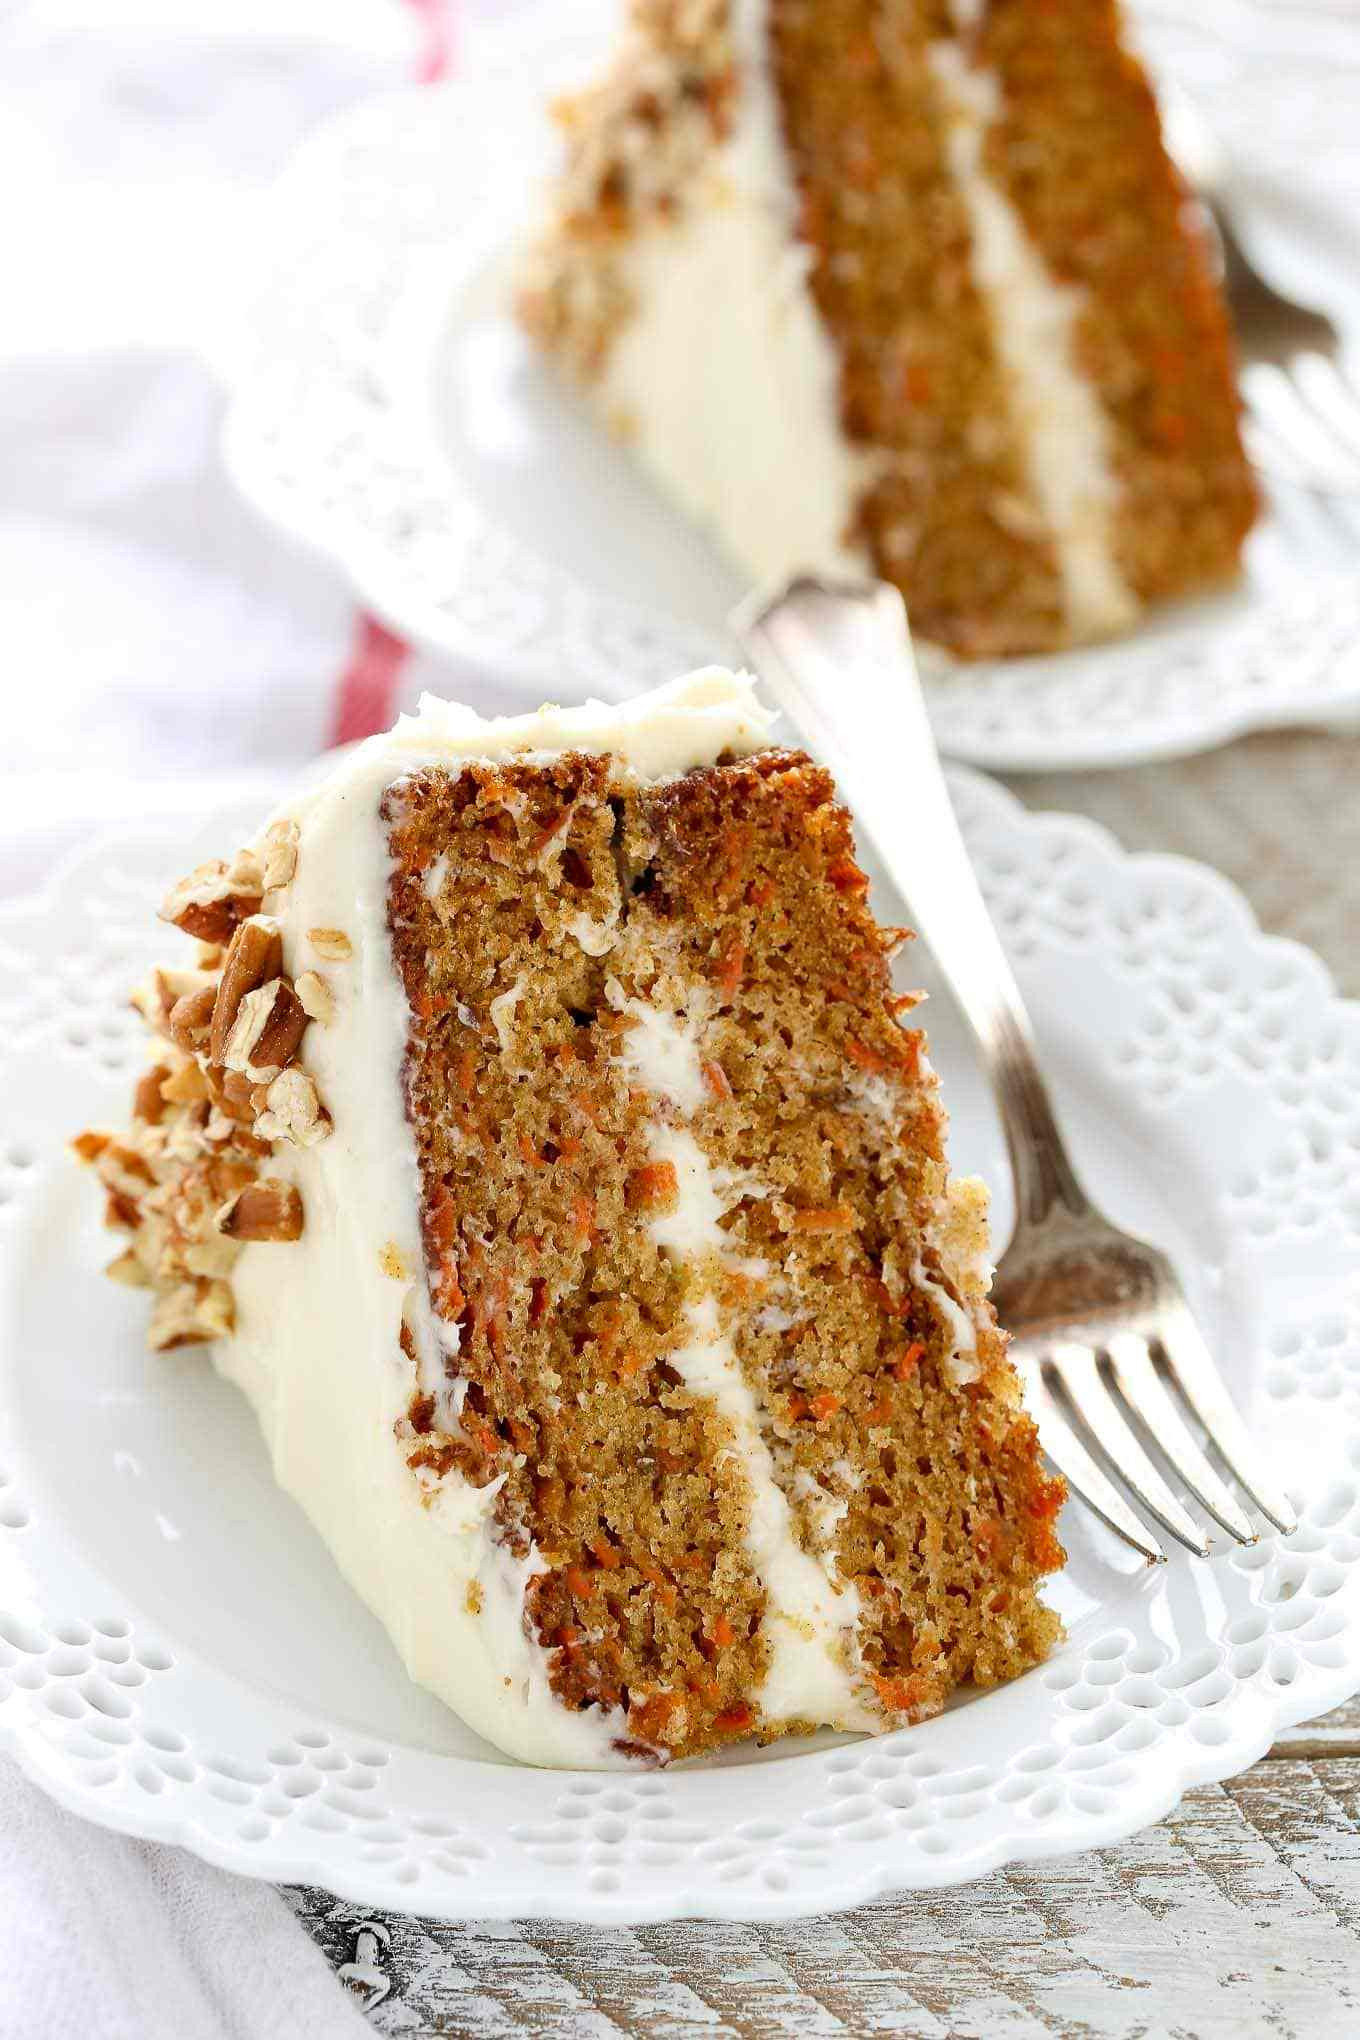 Carrot Cake Recipes  The BEST Carrot Cake Recipe